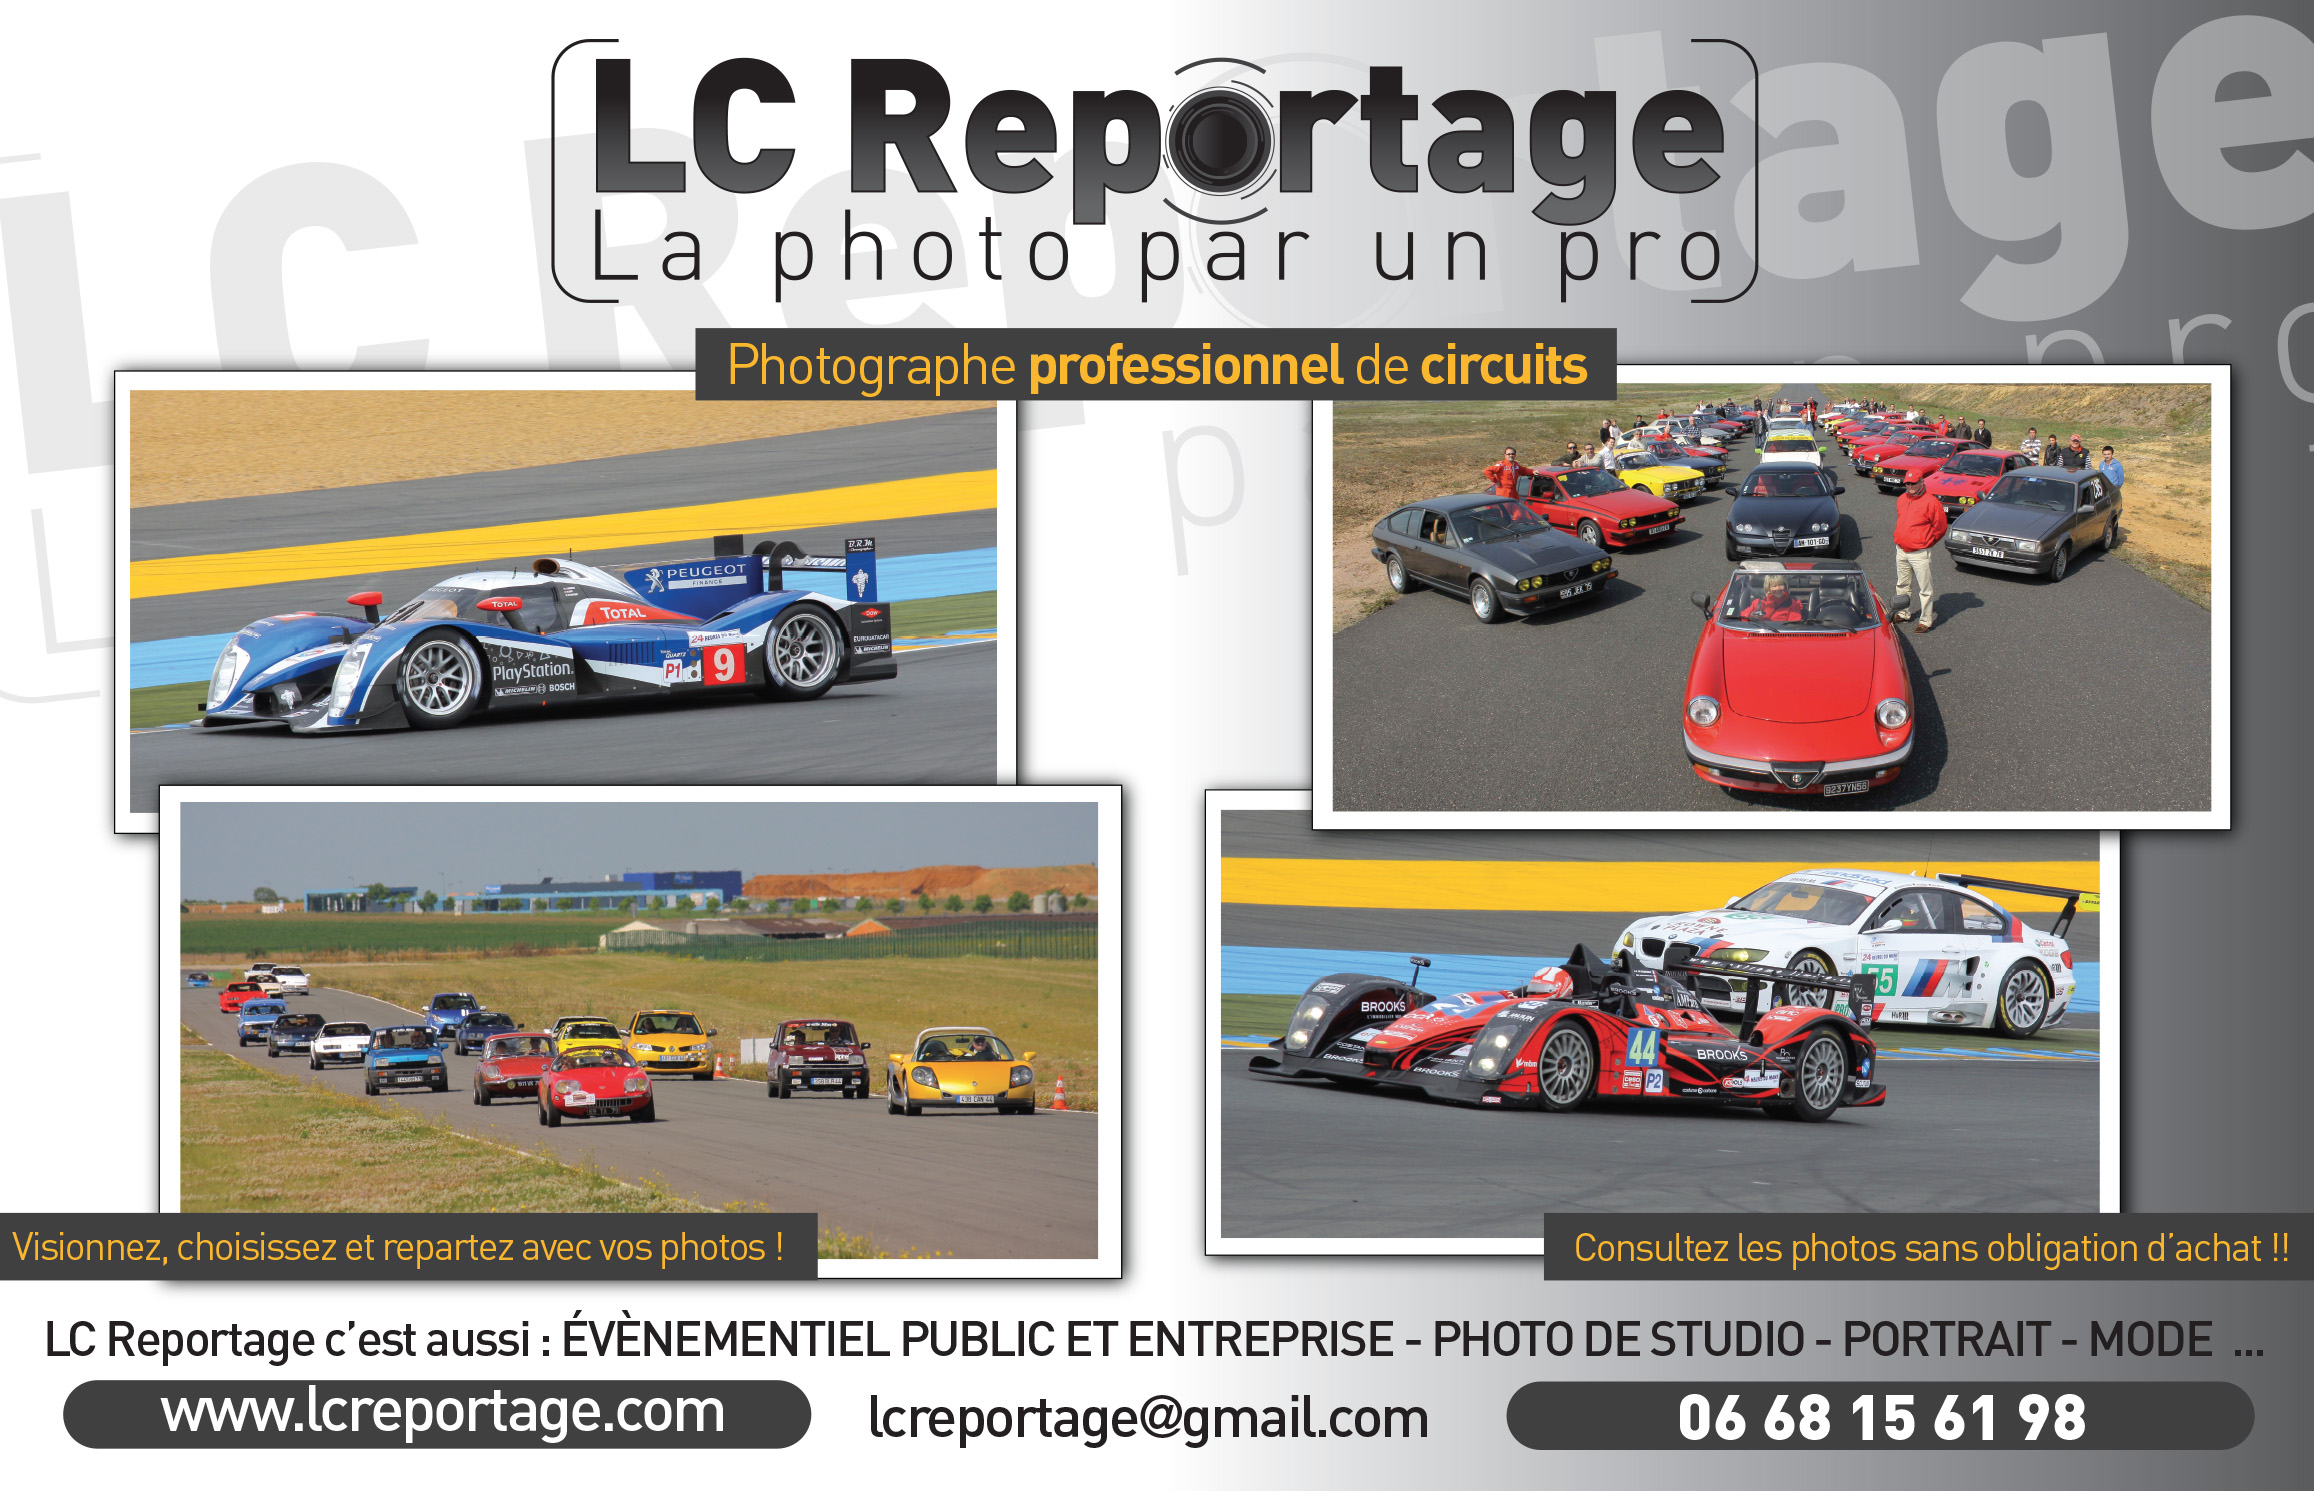 LC Reportage